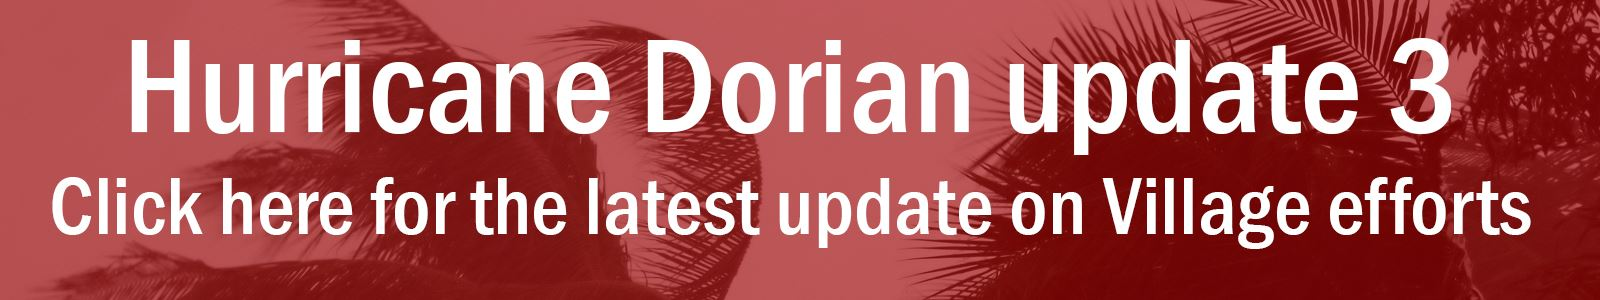 Blowing trees with text saying Hurricane Dorian update 3 - click here for latest update on Village e